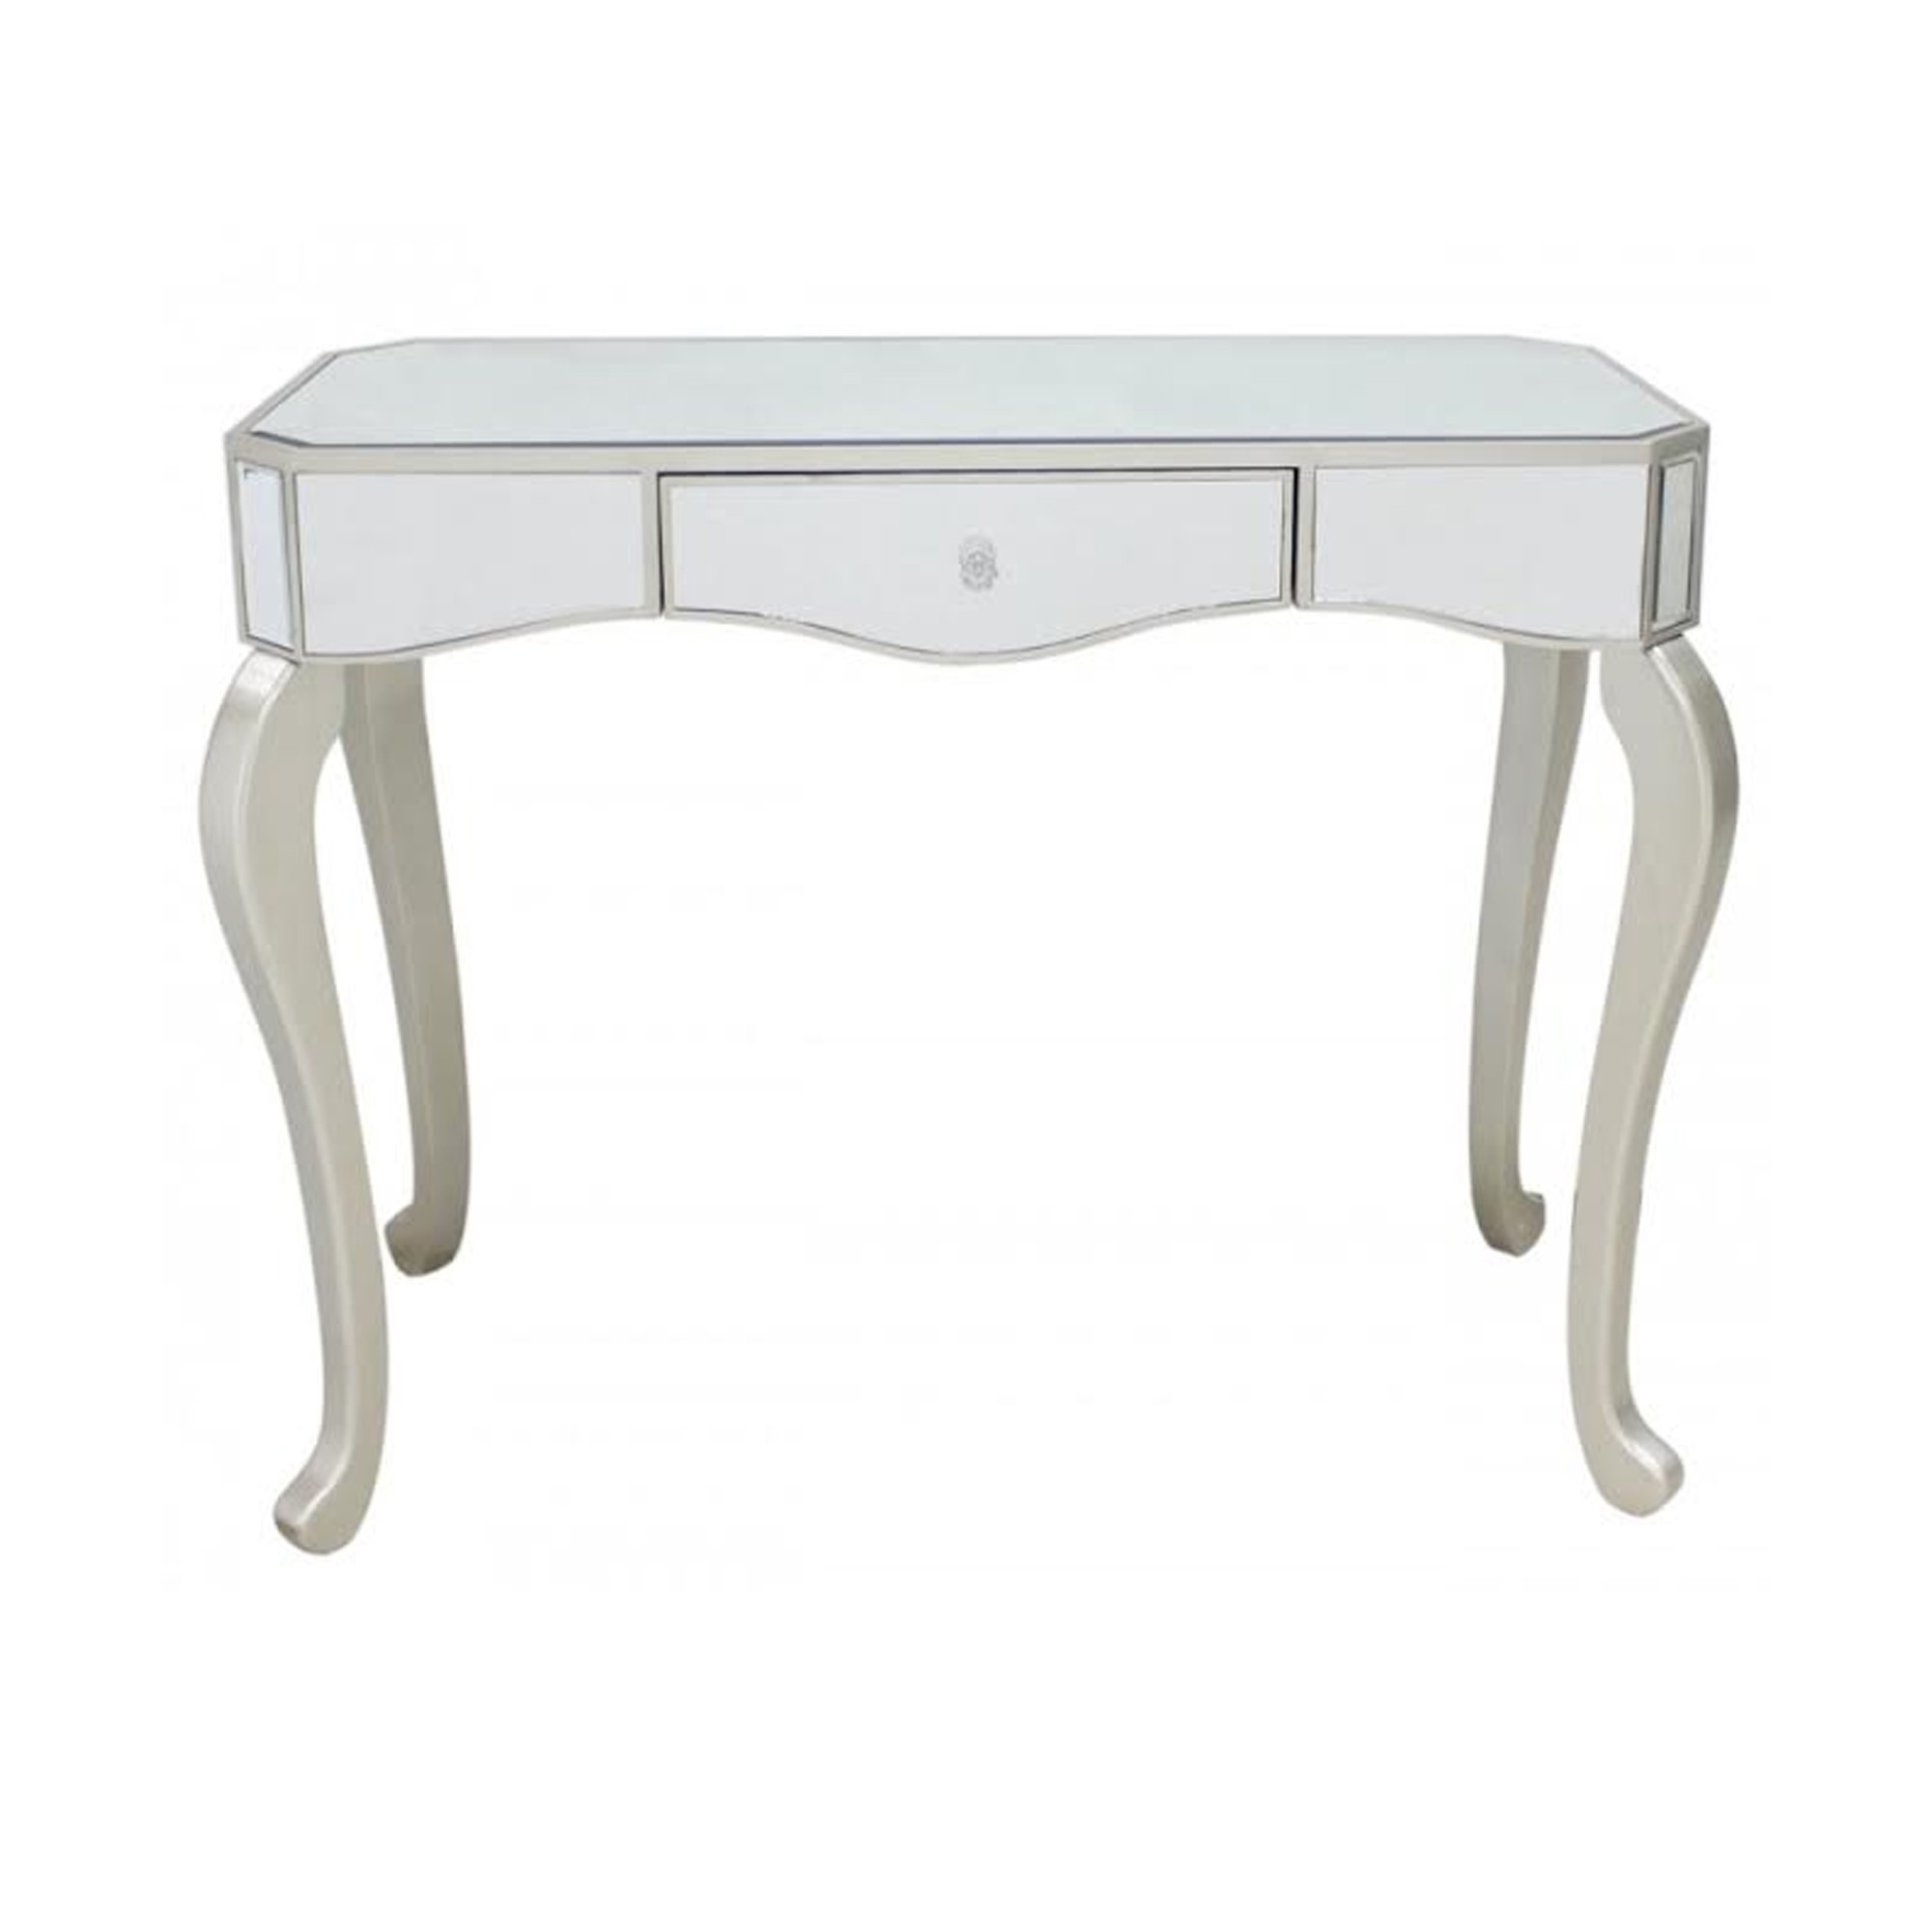 mirror console table. Mirrored Console Table Mirror